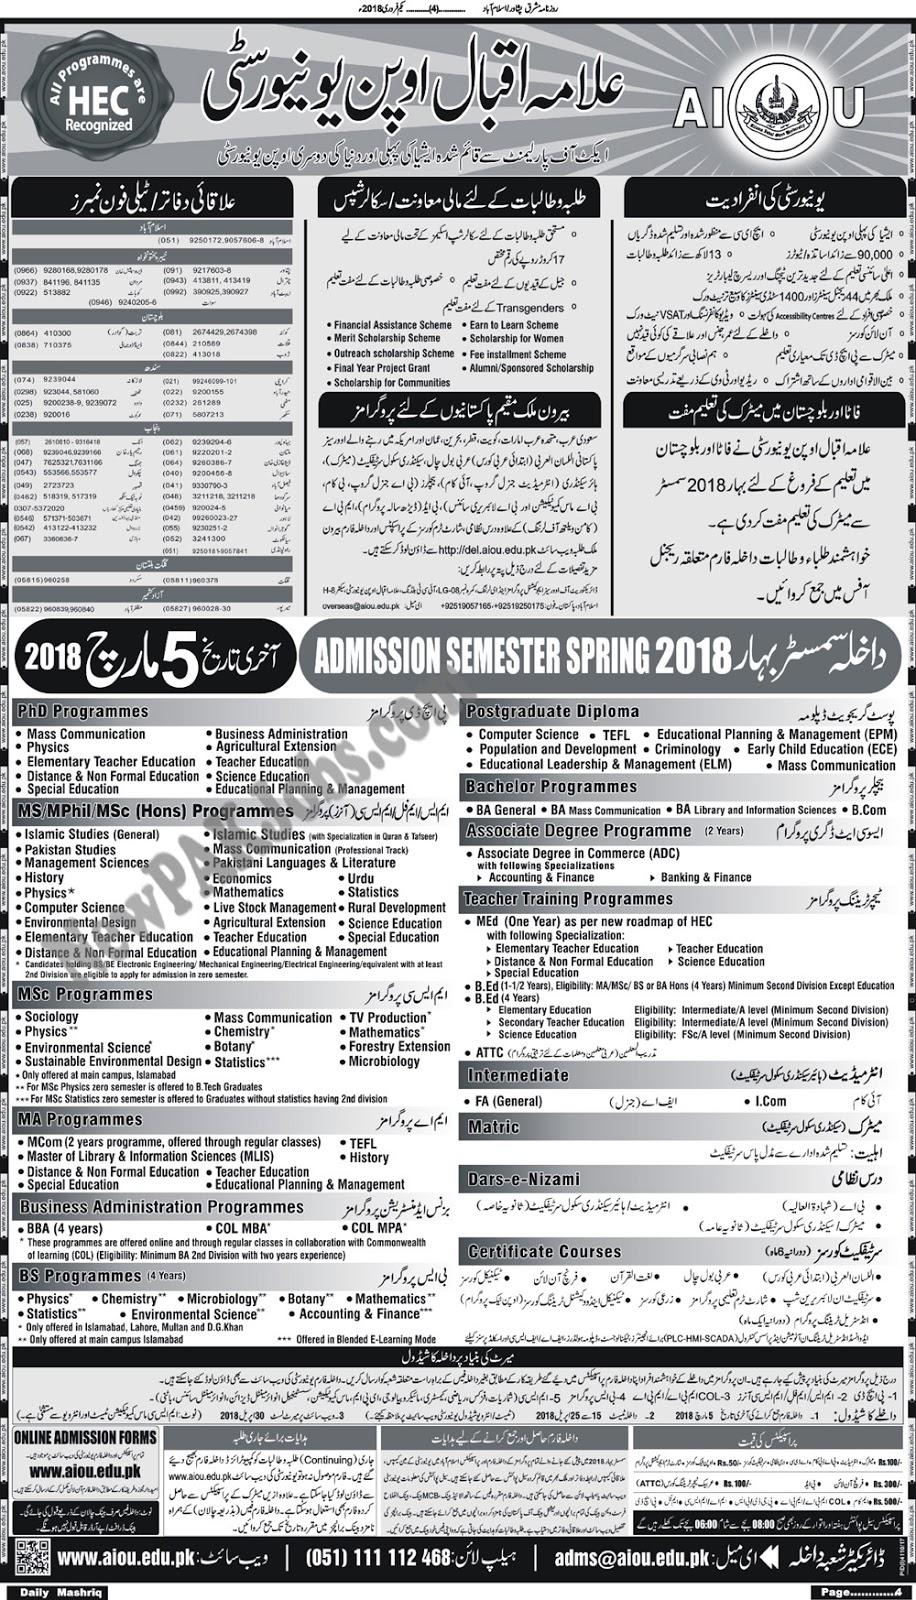 Admission Schedule of Allama Iqbal University for Semester Spring 2018